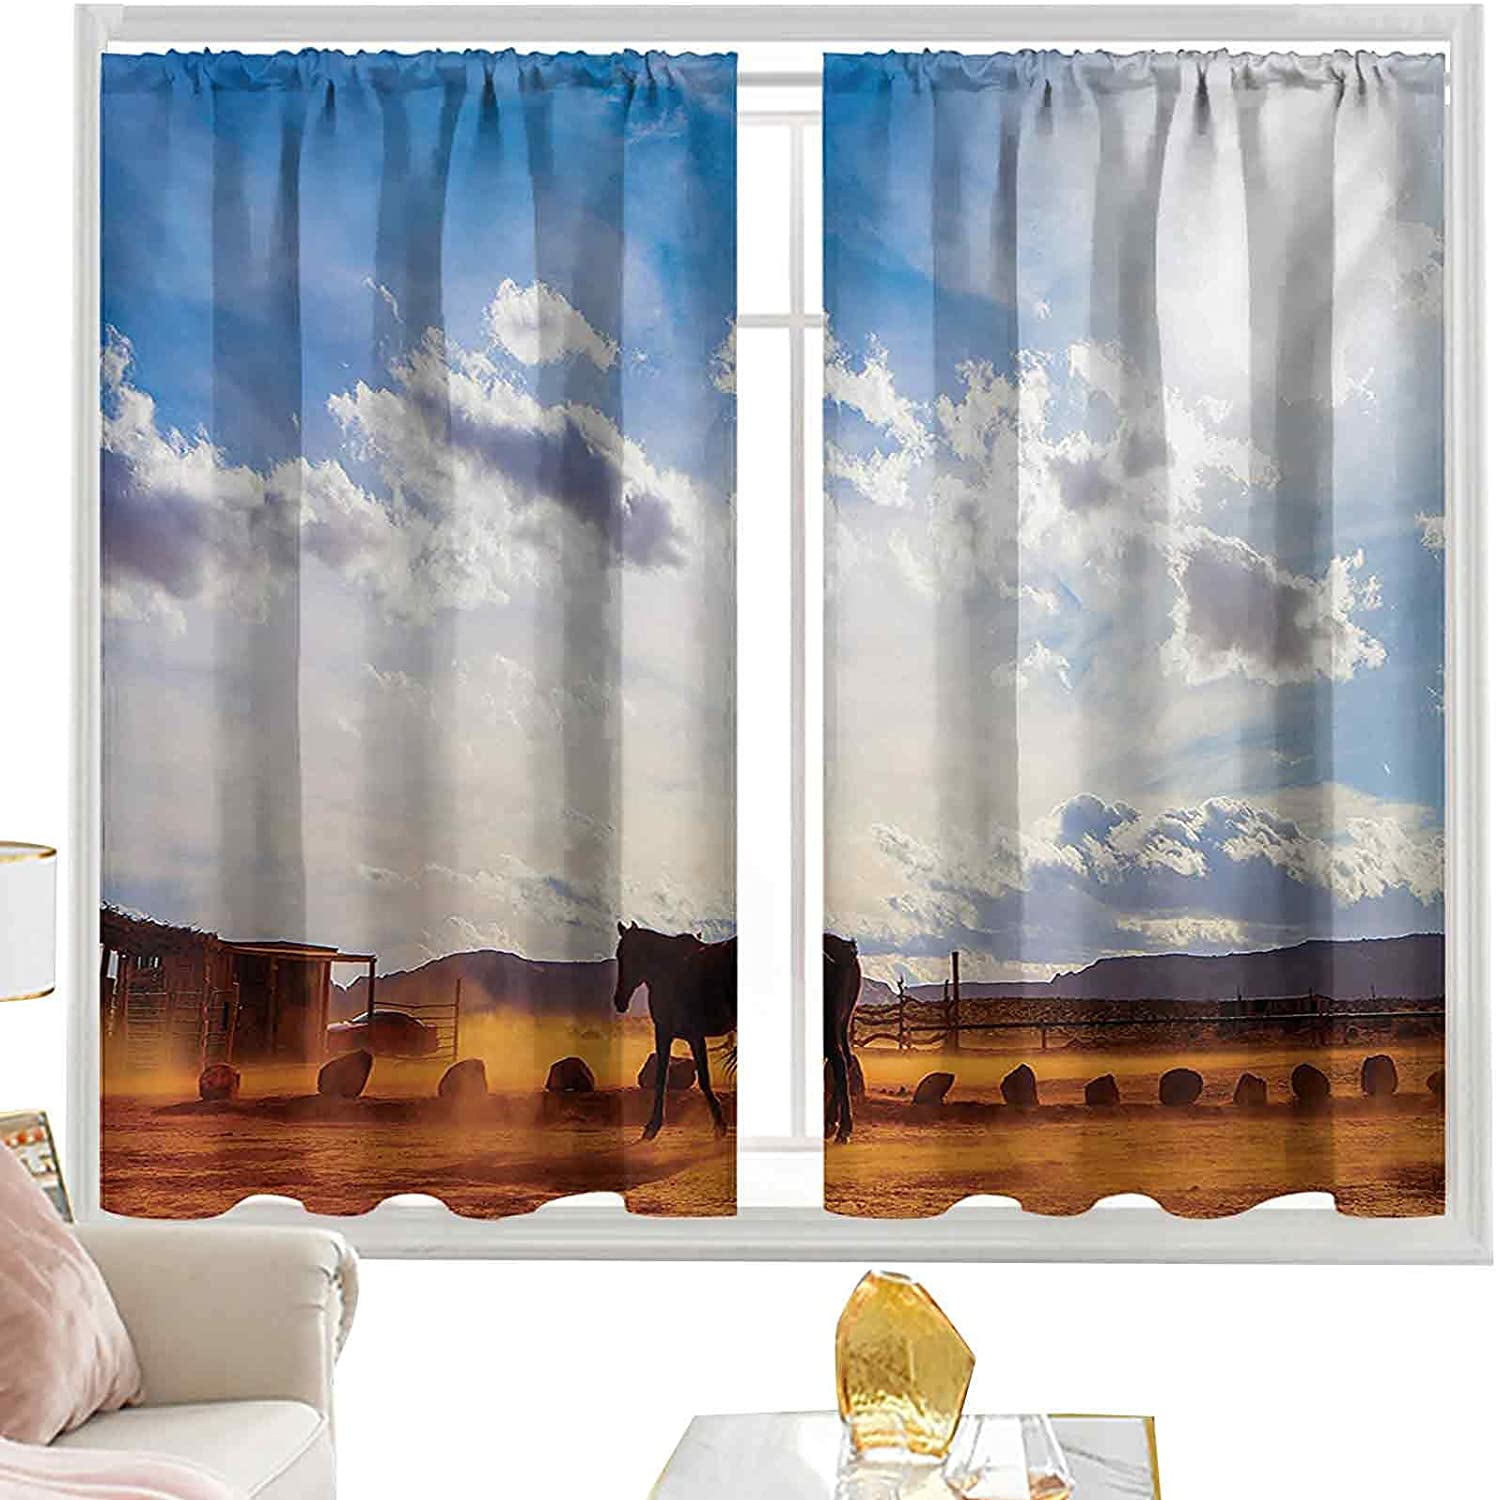 Bedroom Curtains Horse Tampa Mall in Monument Valley with Open Clouds Max 73% OFF Sky